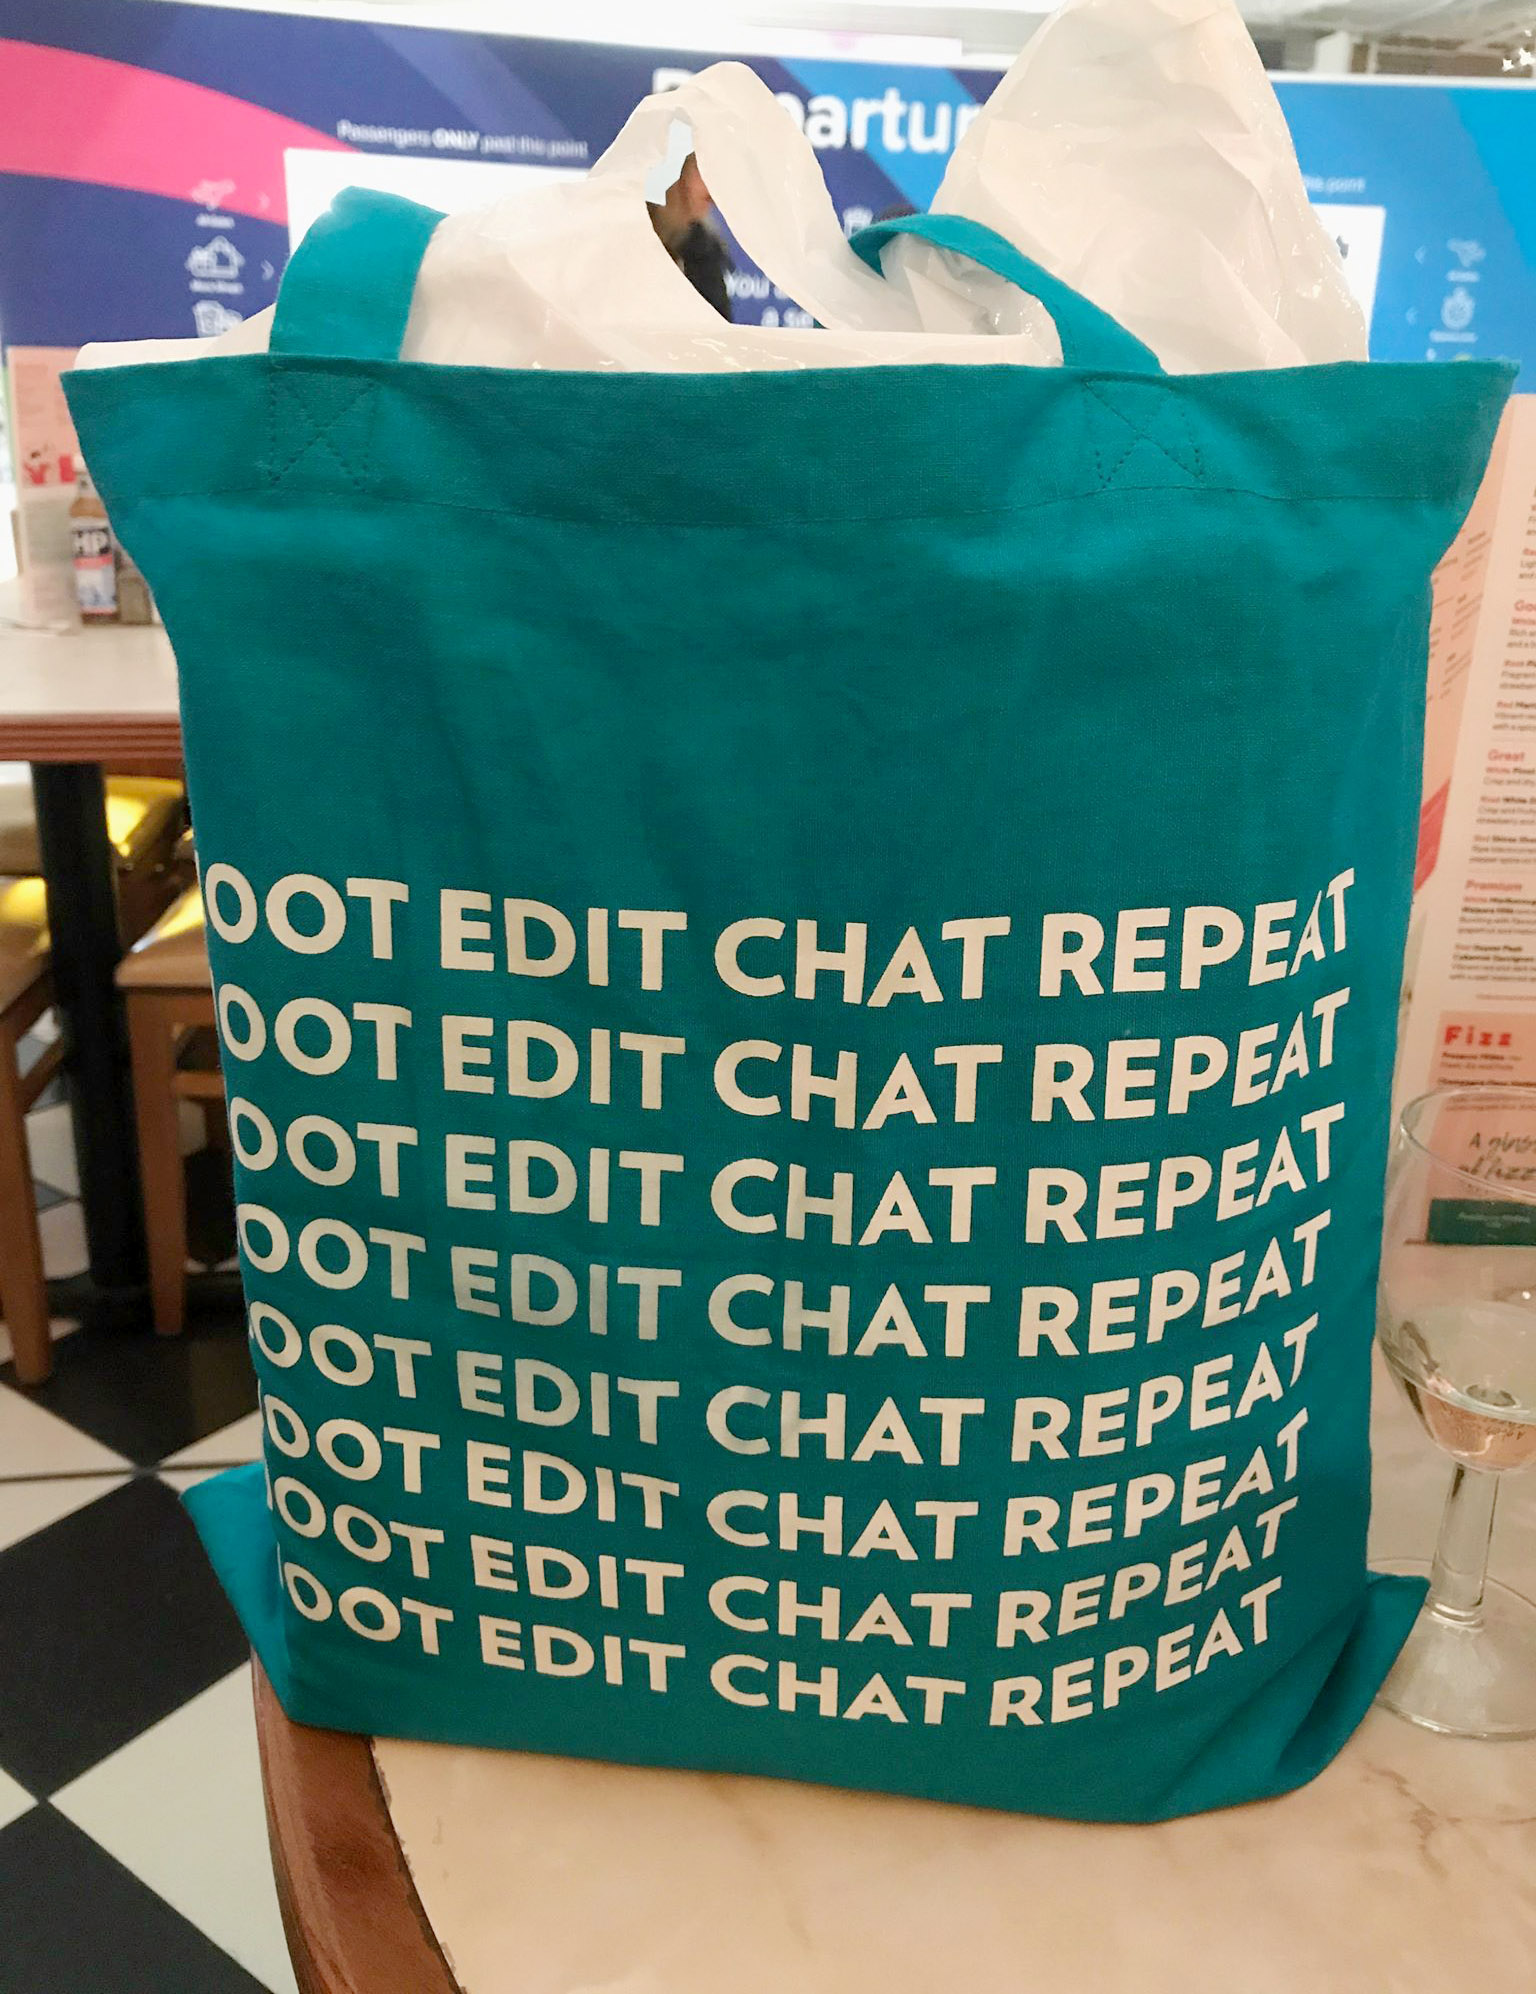 Good thing we brought our favoruite shopping bag!